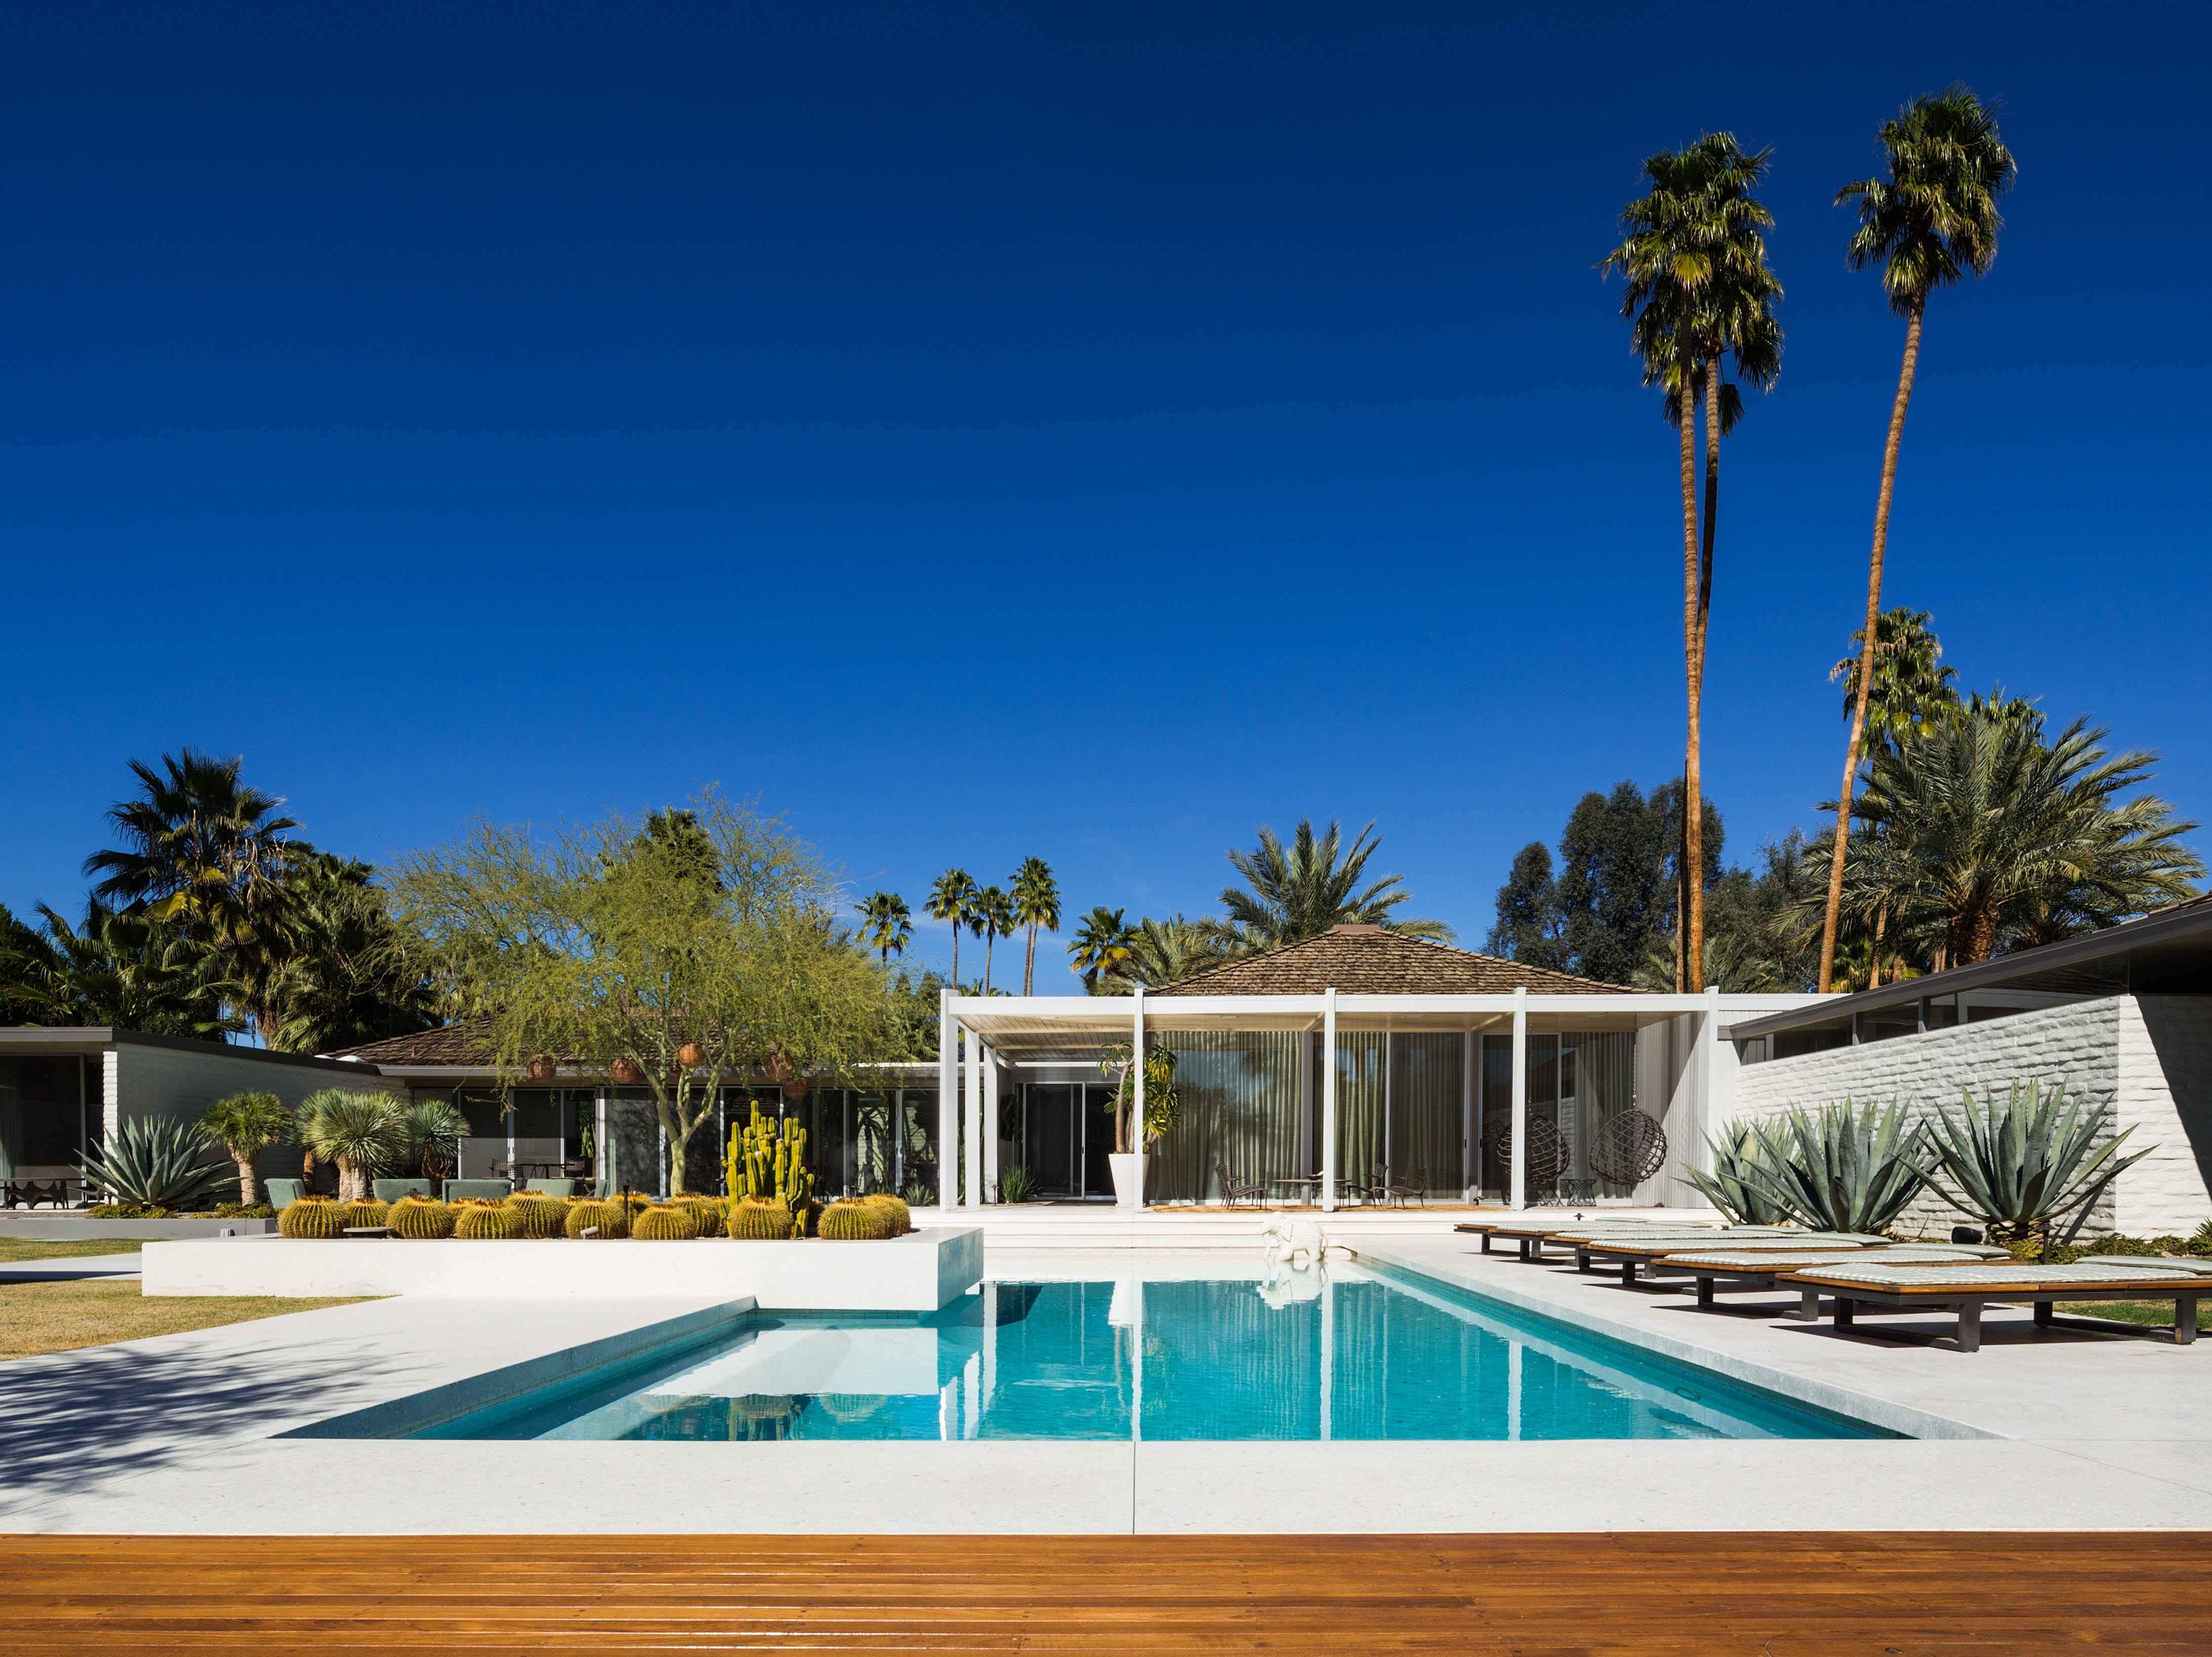 The Abernathy House by William F. Cody in Palm Springs